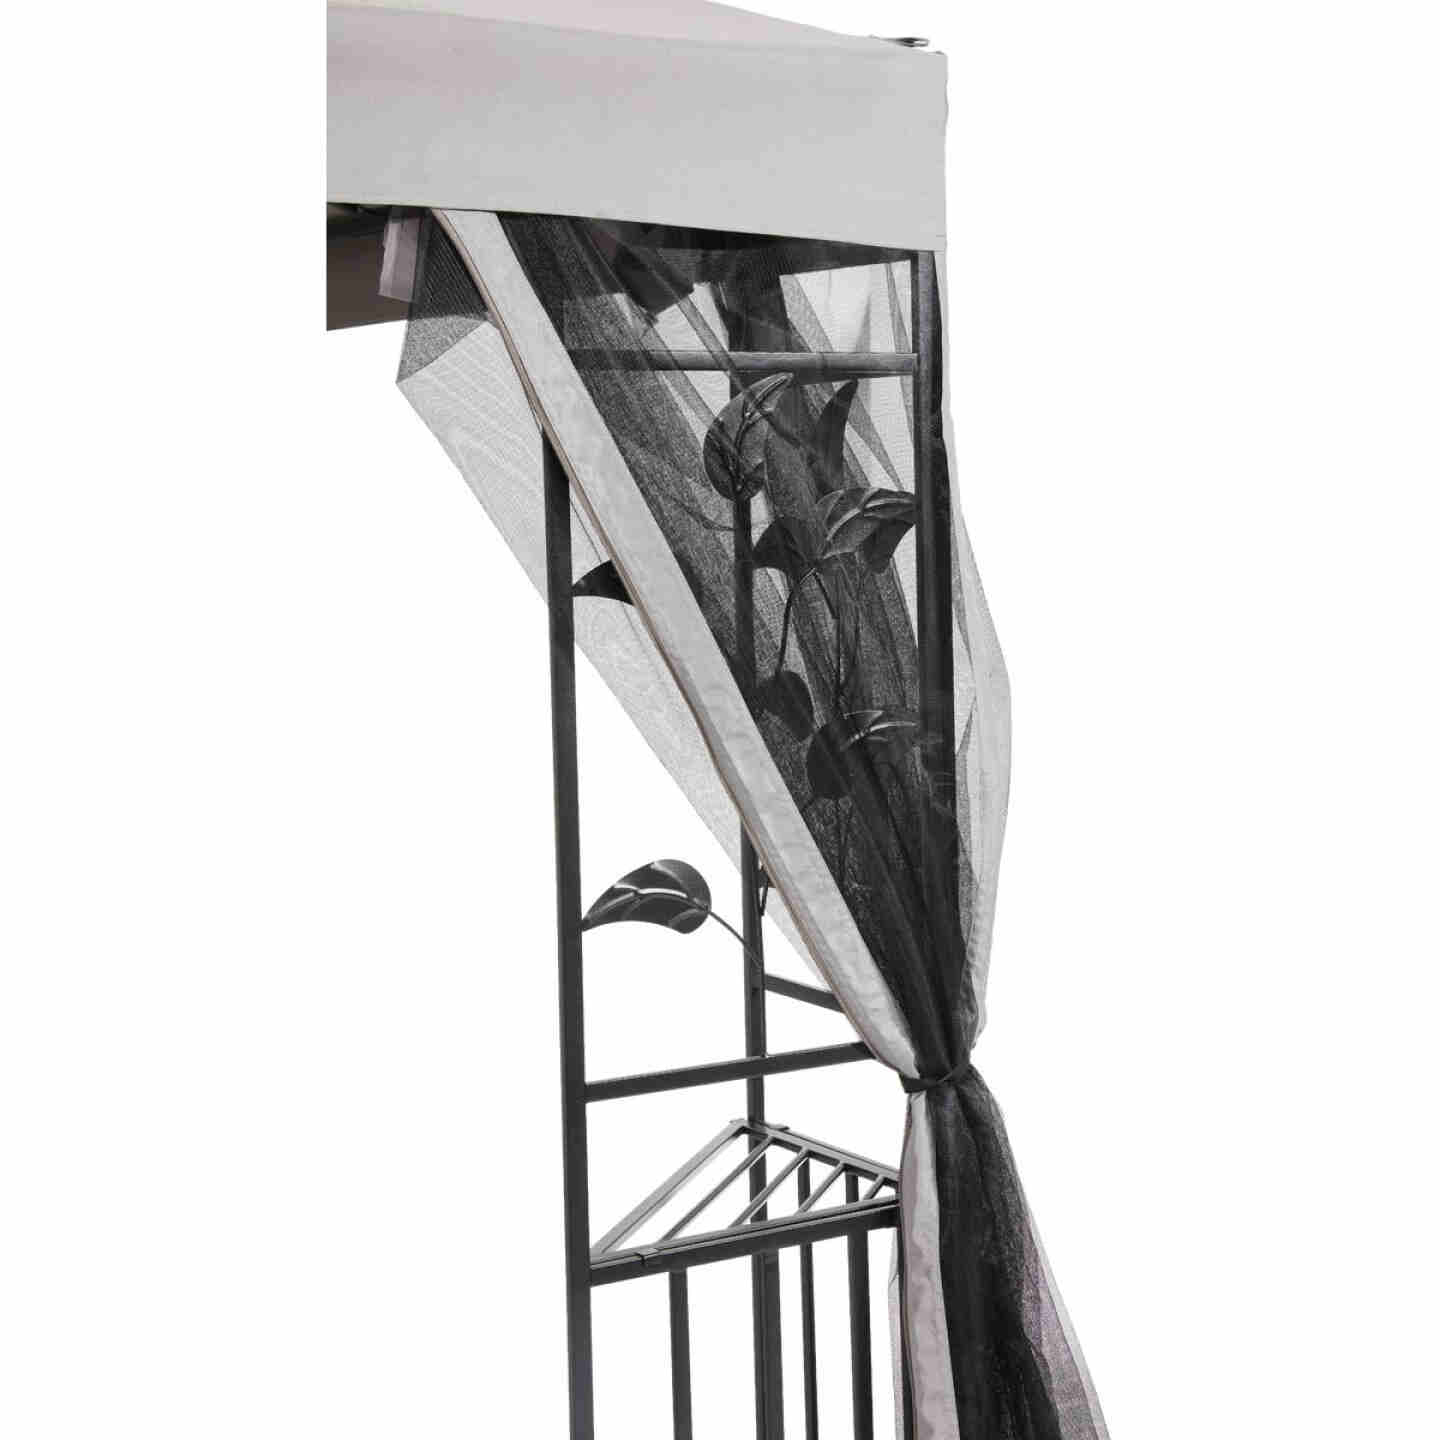 Outdoor Expressions 12 Ft. x 12 Ft. Gray & Black Steel Gazebo with Sides Image 11